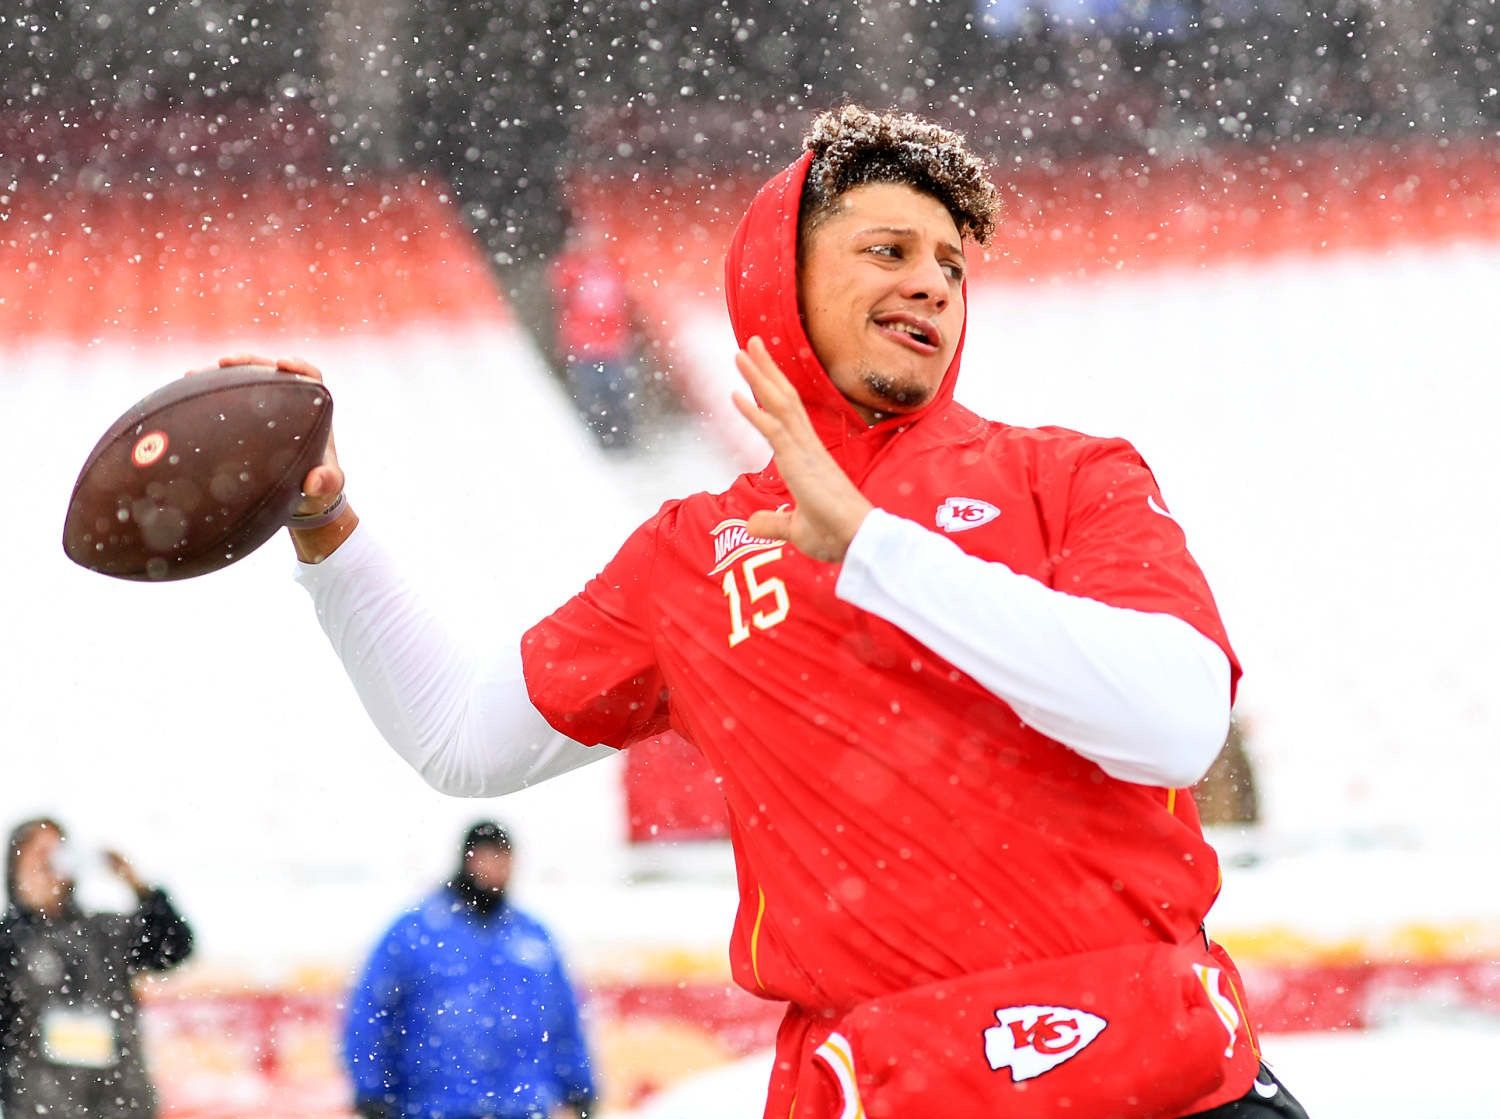 Pin By Courtney4793 On Patrick Mahomes With Images Kc Chiefs Kansas Chiefs Kansas City Chiefs